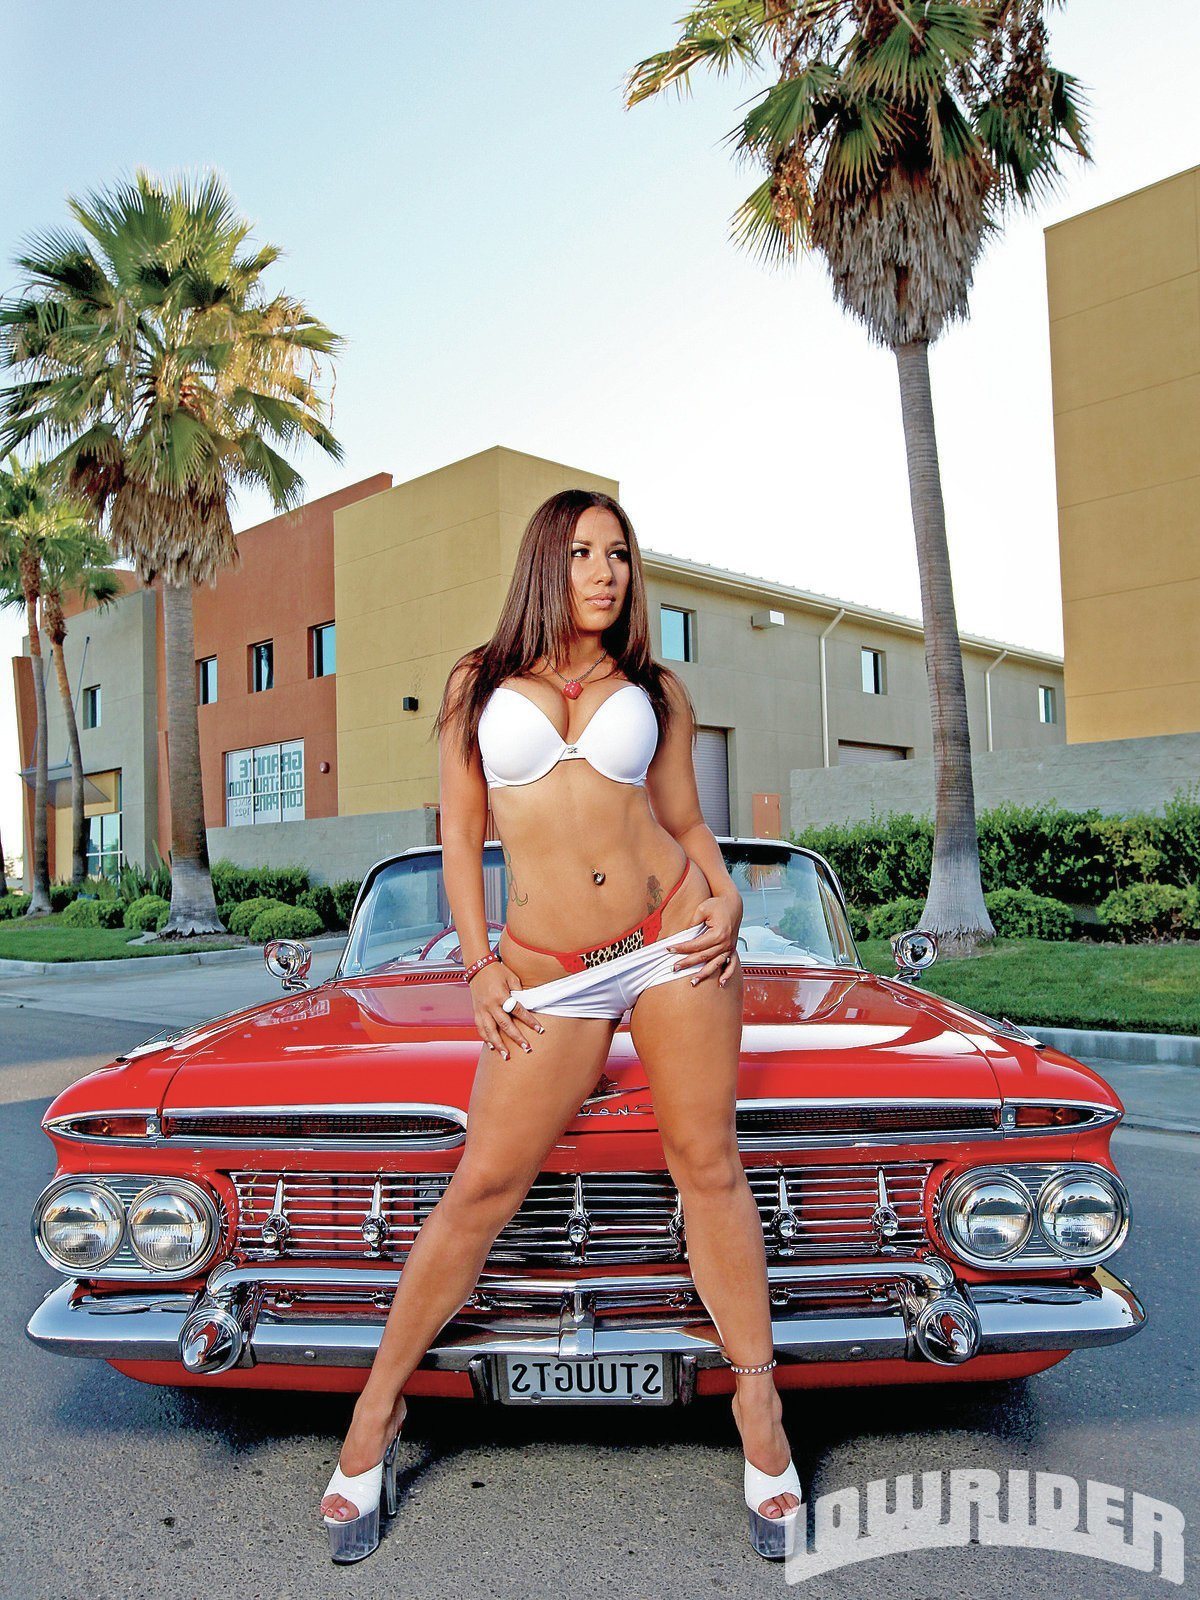 Lowrider girls images black